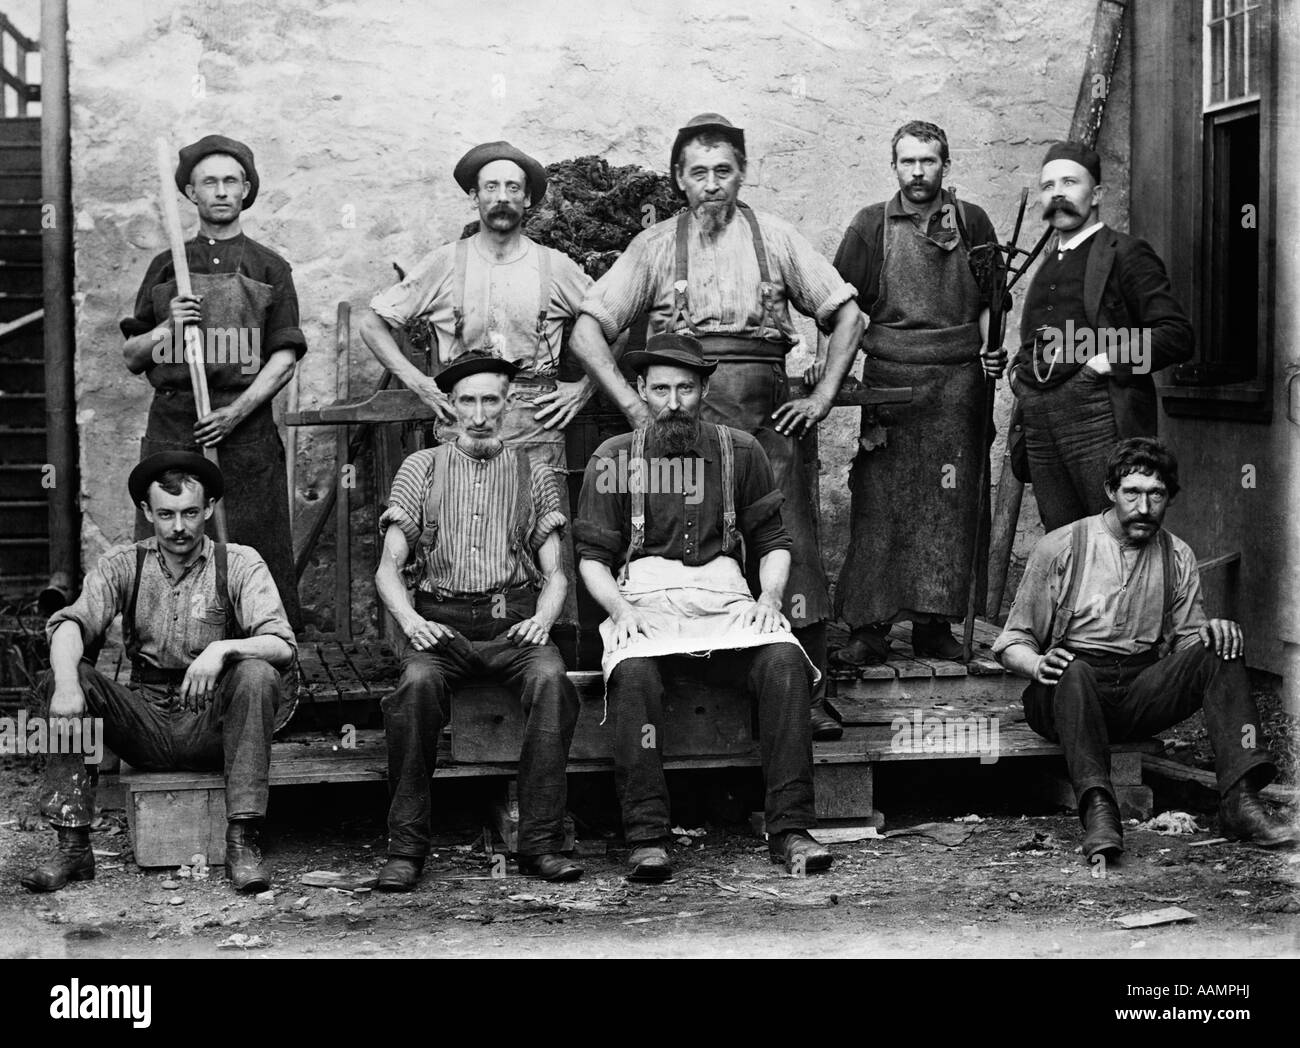 1890s 1900s GROUP PORTRAIT OF 9 CARPET MILL WORKERS - Stock Image